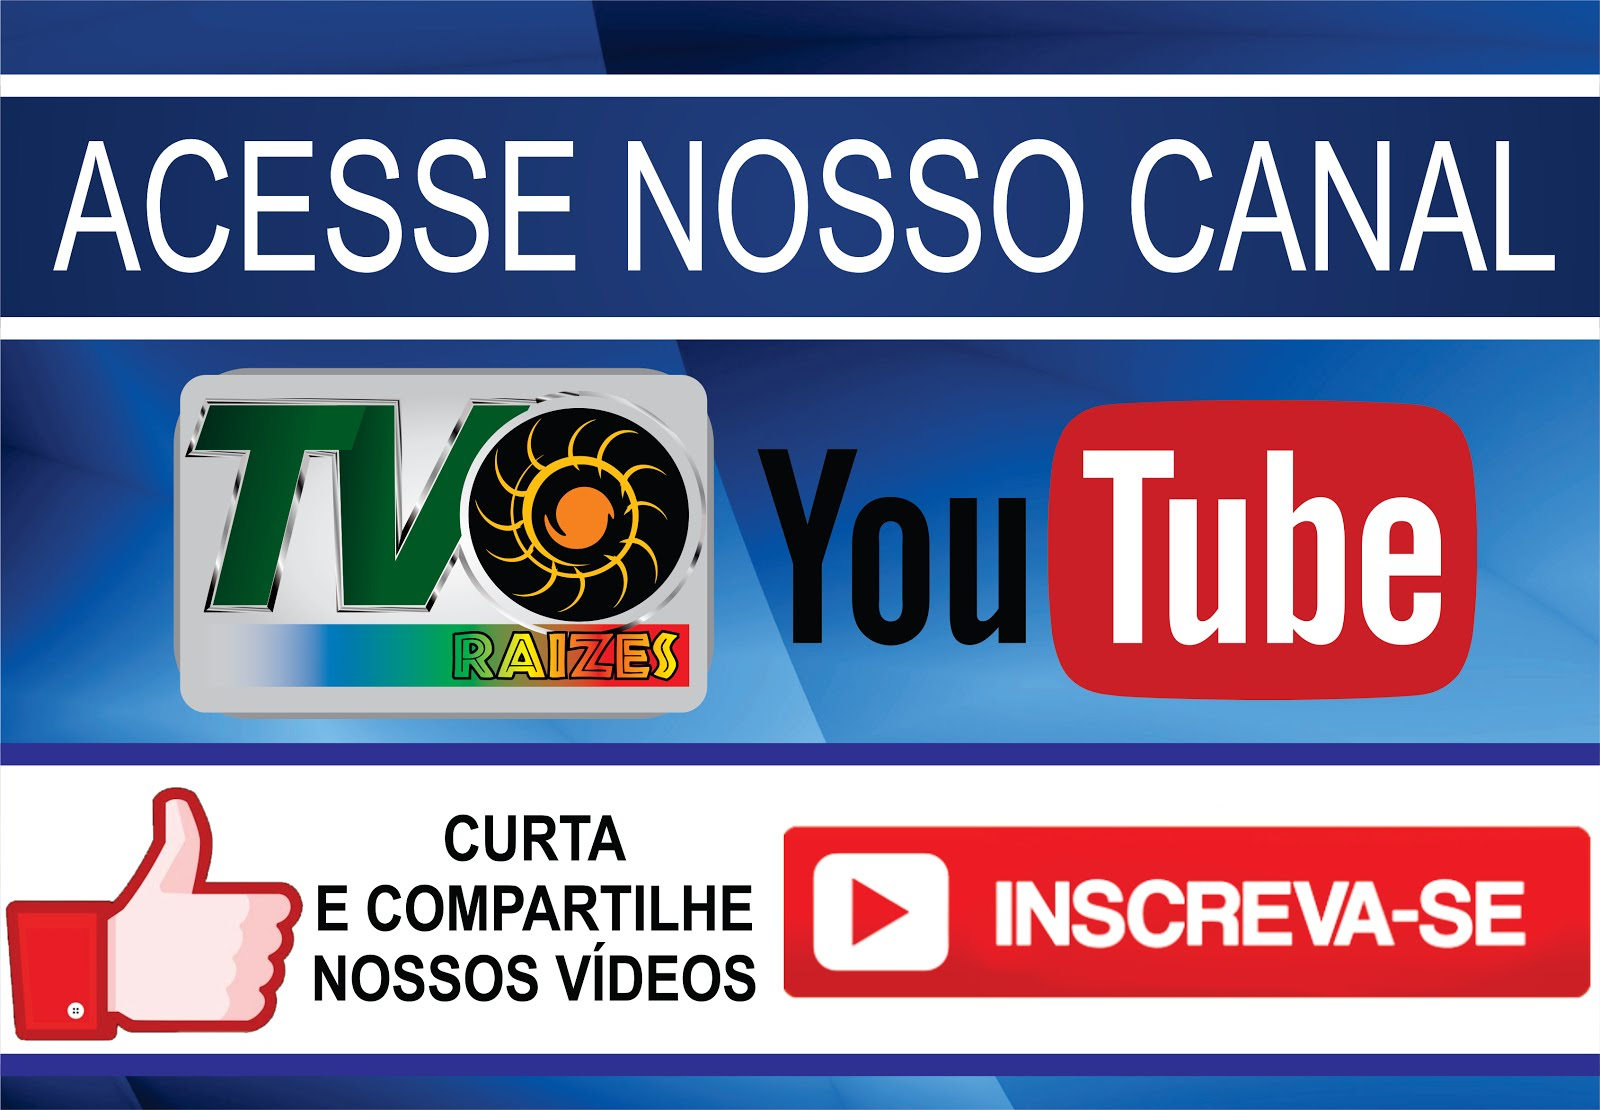 CANAL DE VÍDEOS DA TV RAÍZES NO YOUTUBE